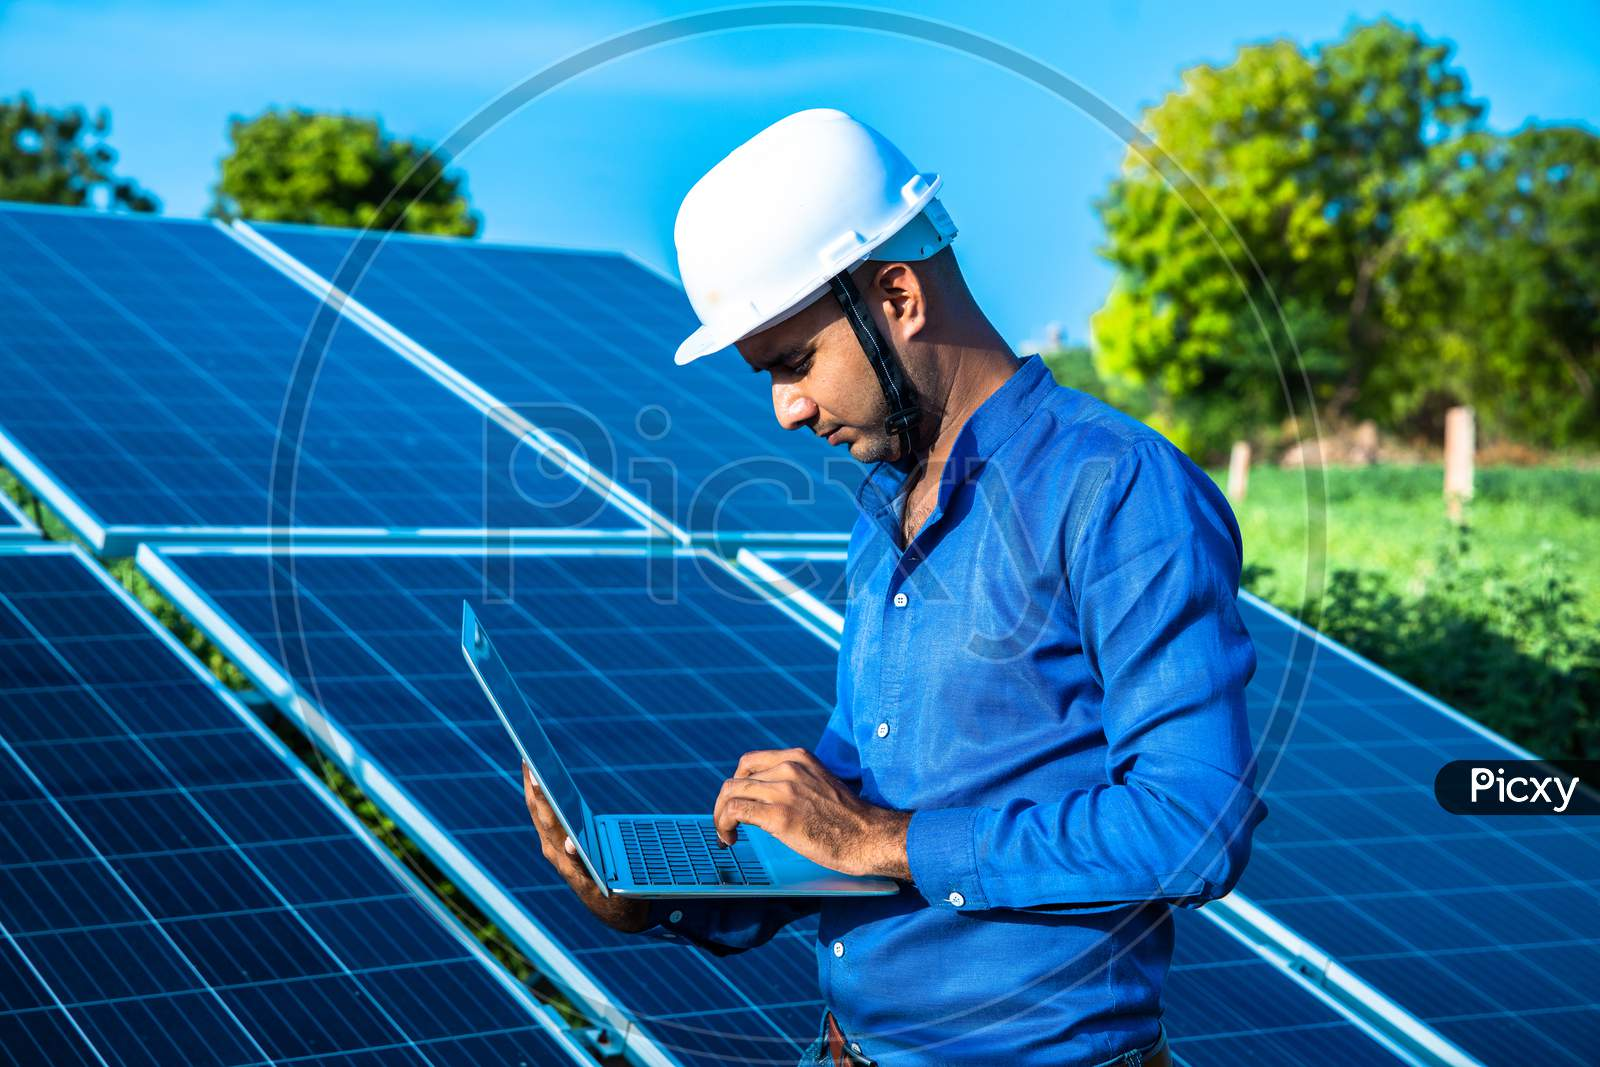 Young Male Engineer With Laptop In Hand Standing Near Solar Panels, Agriculture Farm Land With Clear Blue Sky Background, Renewable Energy, Clean Energy.